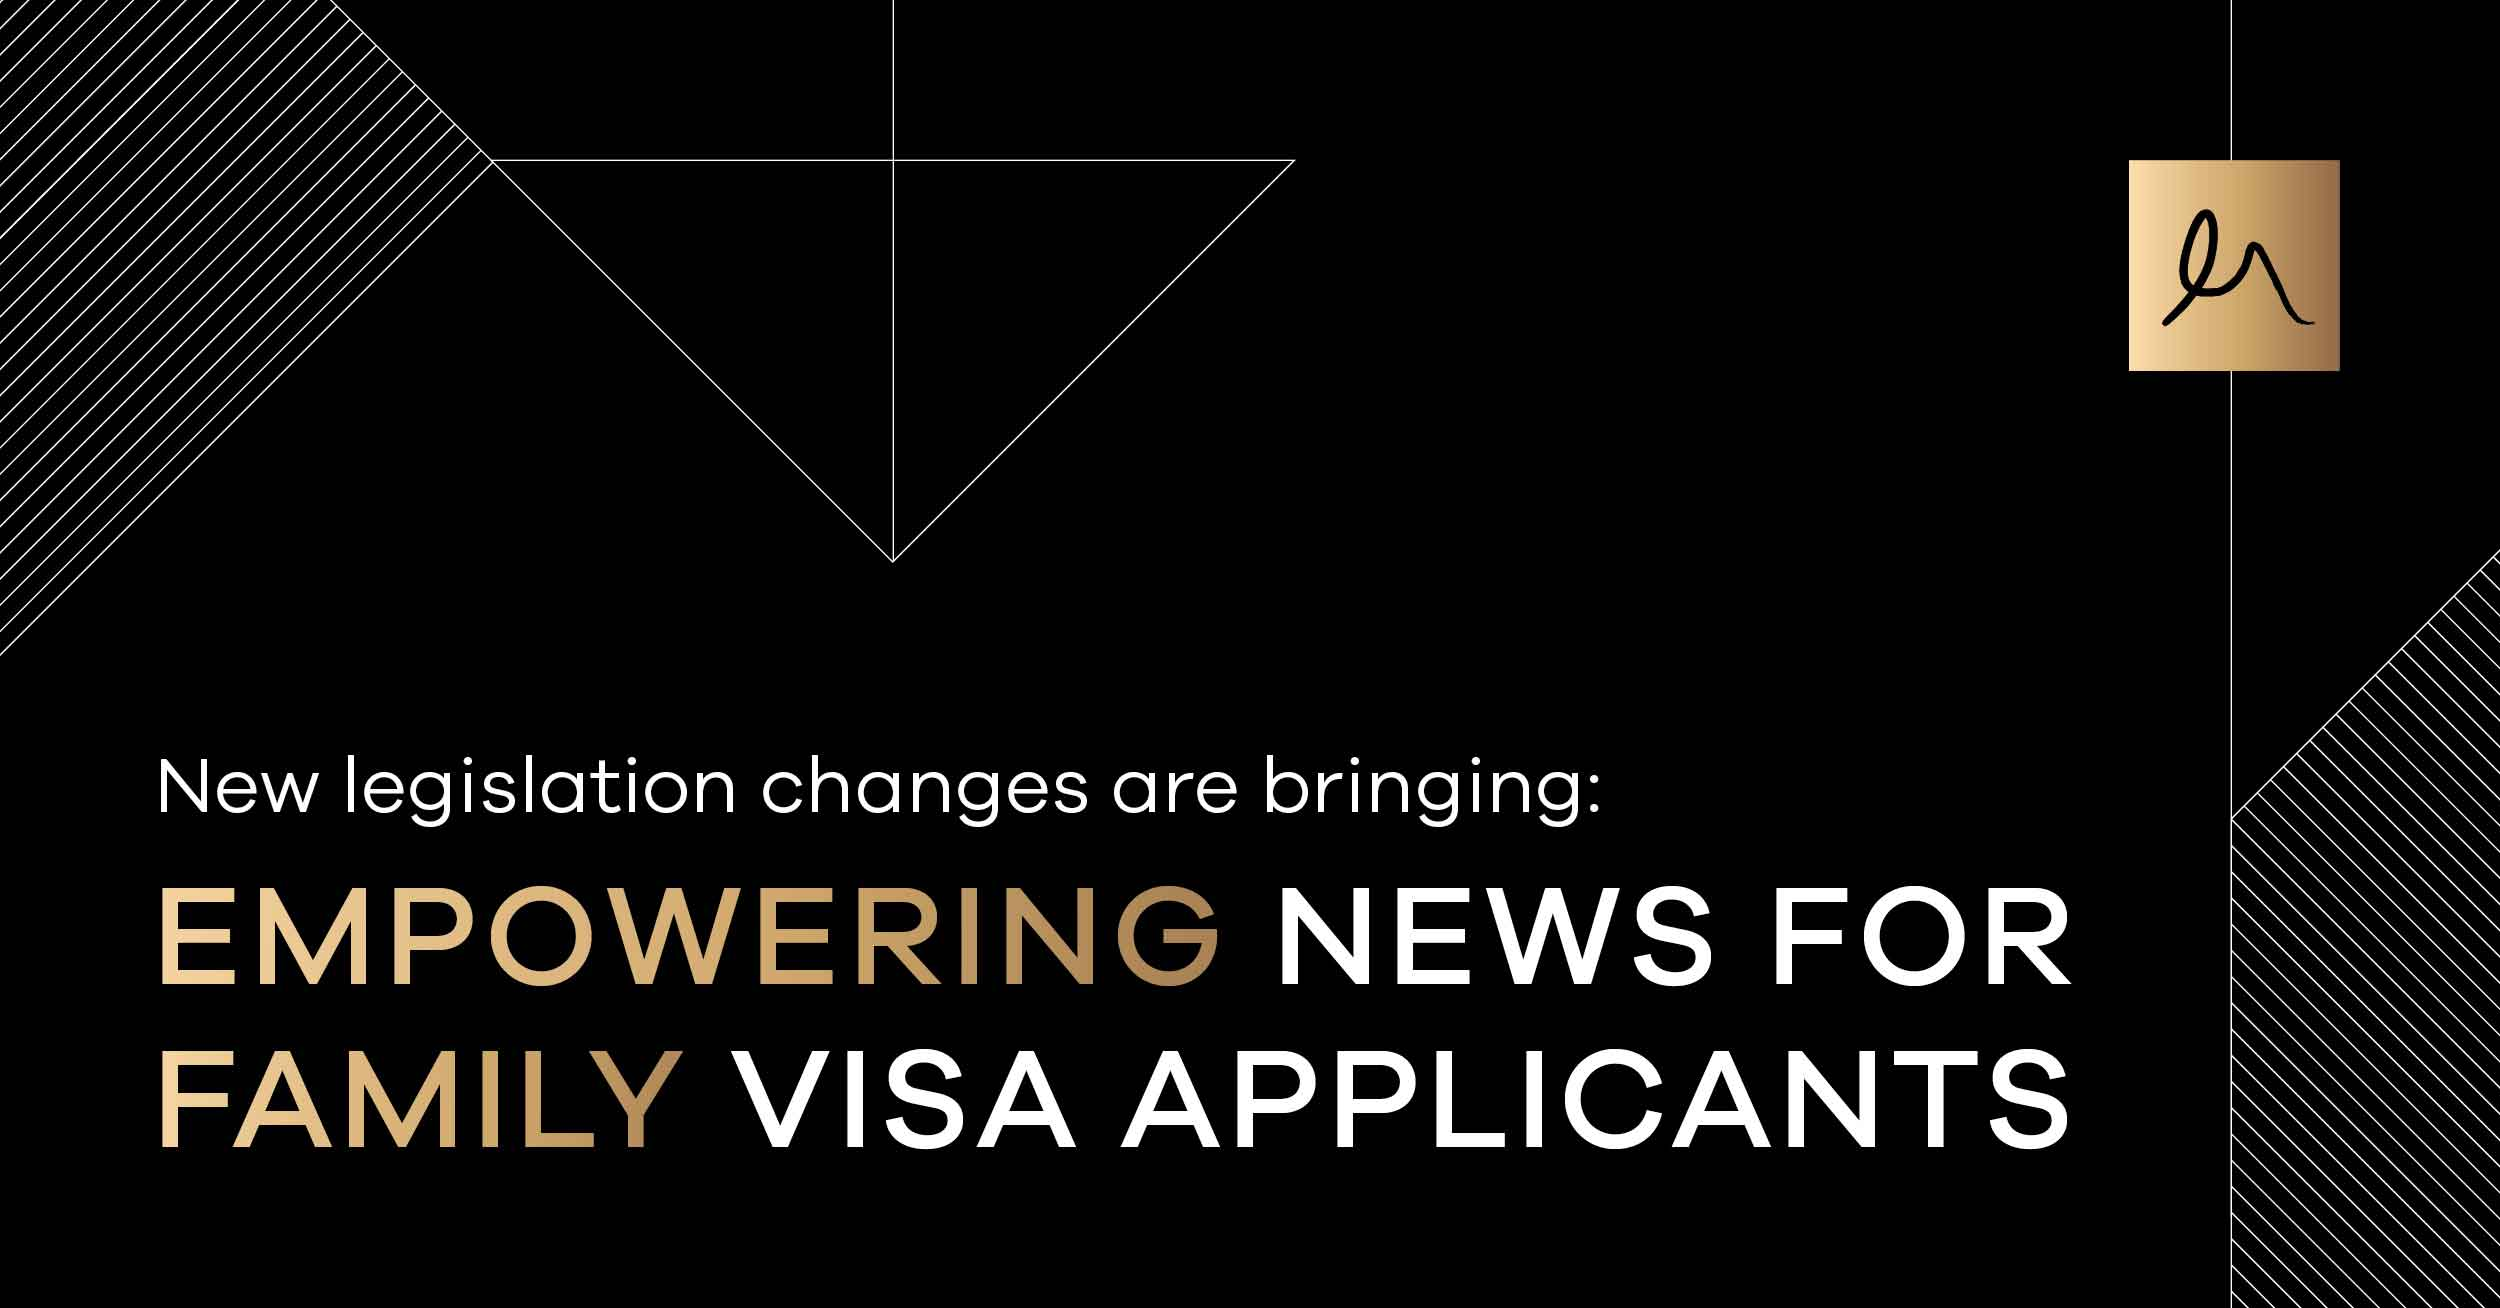 Important updates to visa applications during COVID-19